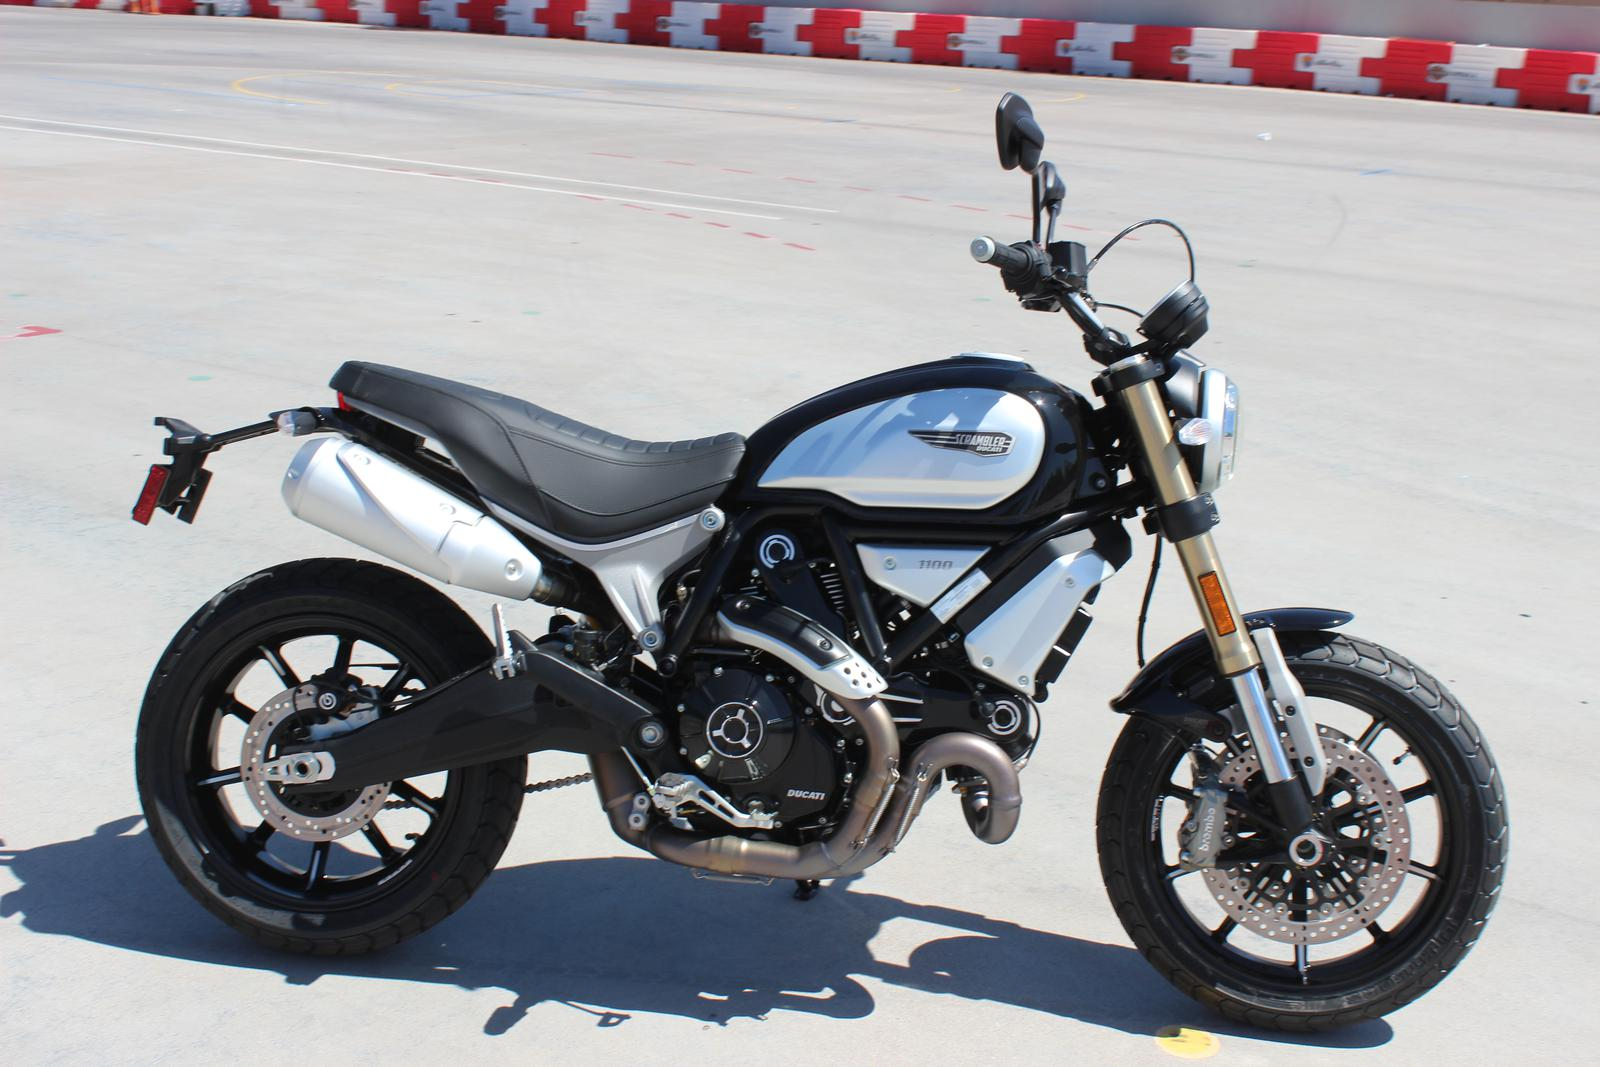 2018 Ducati Scrambler 1100 Demo For Sale In Scottsdale Az Go Az